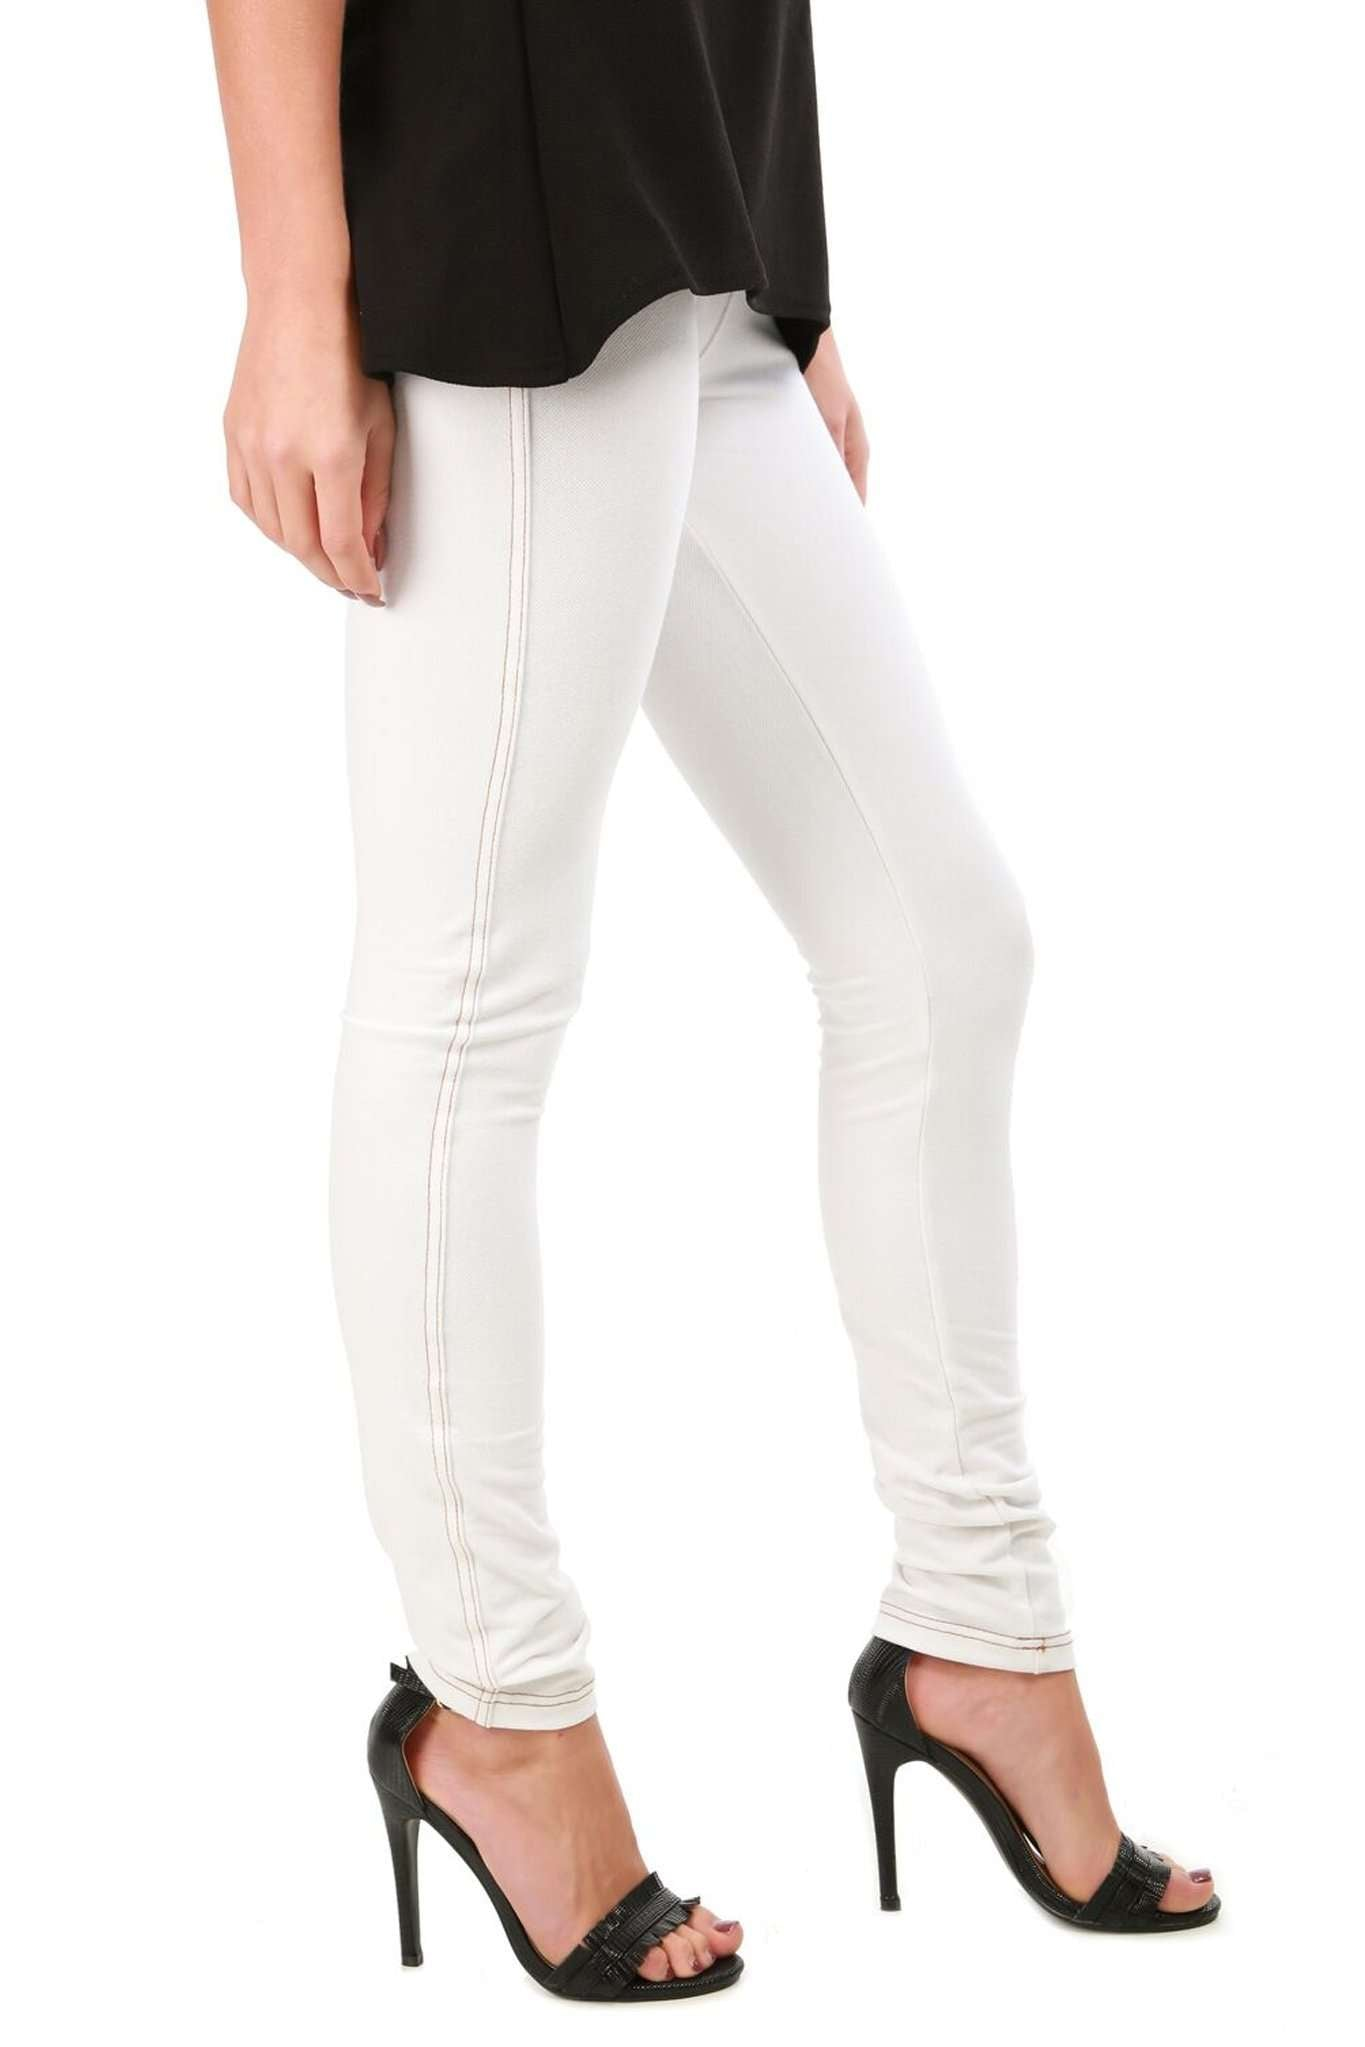 High Waist Stretch Skinny Denim Jeggings - bejealous-com